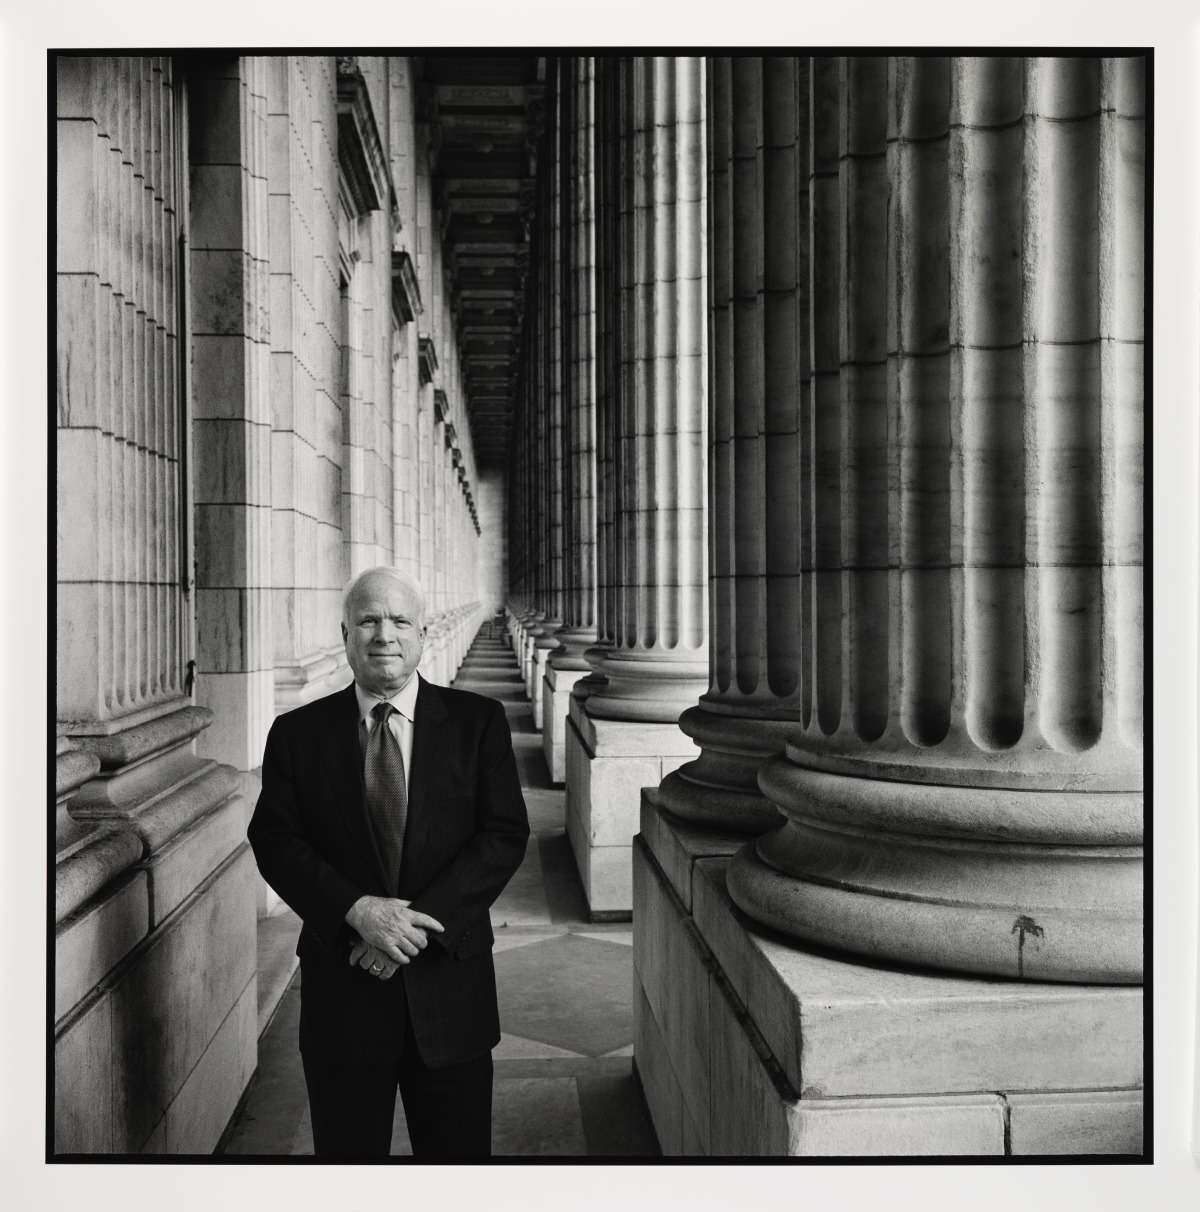 John McCain National Portrait Gallery